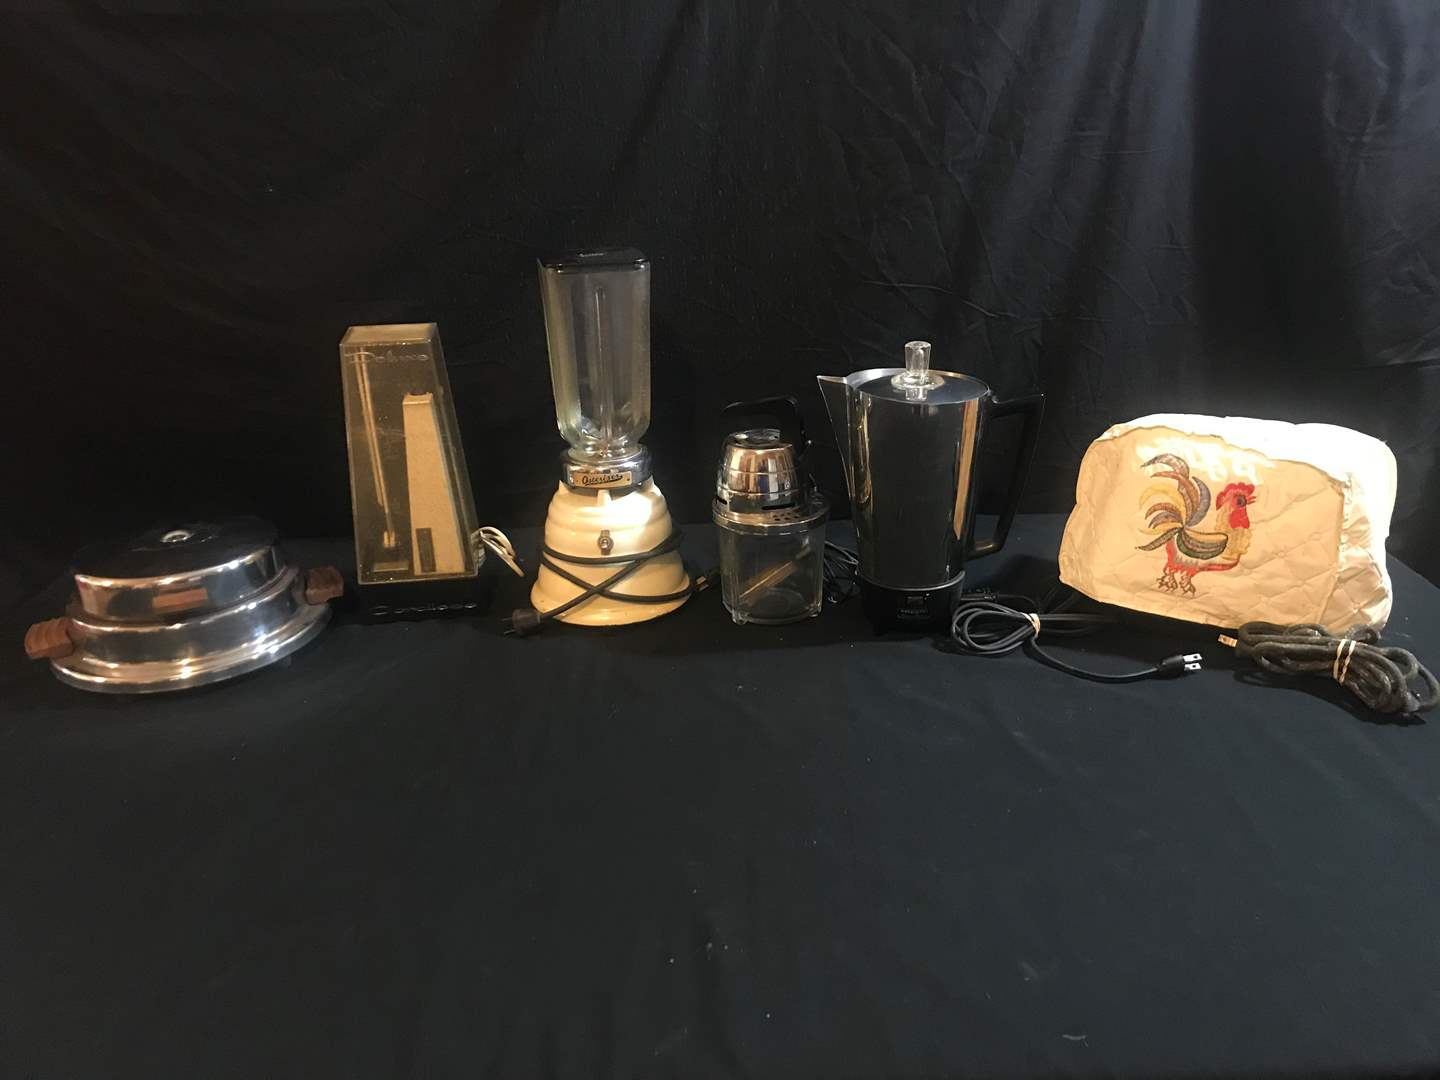 Lot # 80 - NDURA Electric Knife, Oster Blender, DORBY Electric Mixer, Presto Coffee Maker, Sunbeam Toaster, Vintage Waffle Maker (main image)